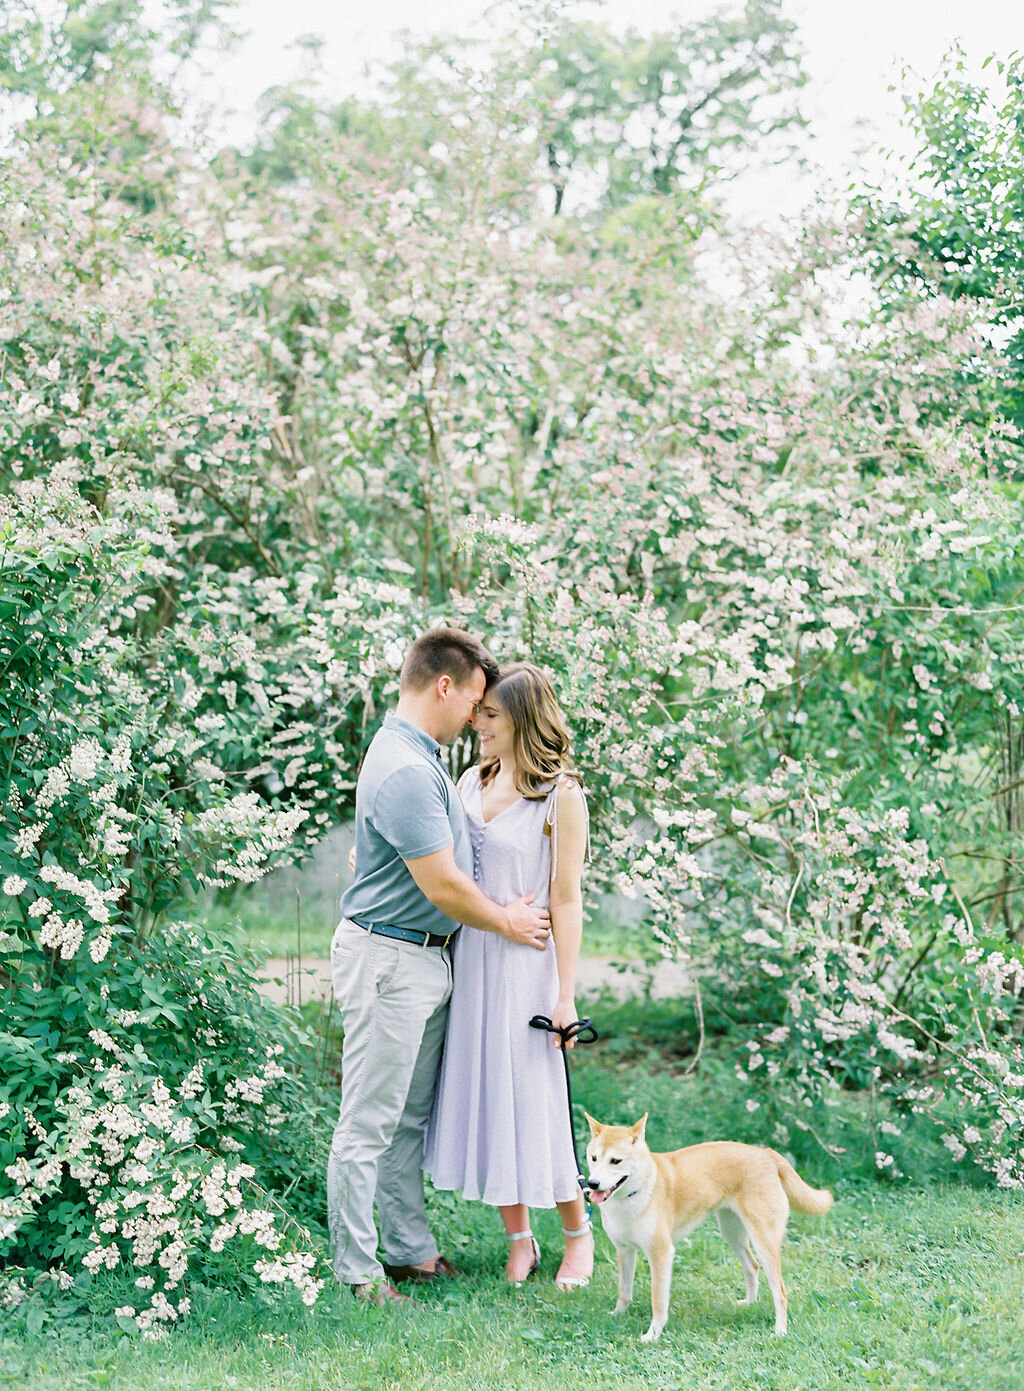 Cylburn Arboretum and Tribeca Engagement Photography Session by Vicki Grafton on East Made Co Baltimore Wedding Planner Blog-43.jpg